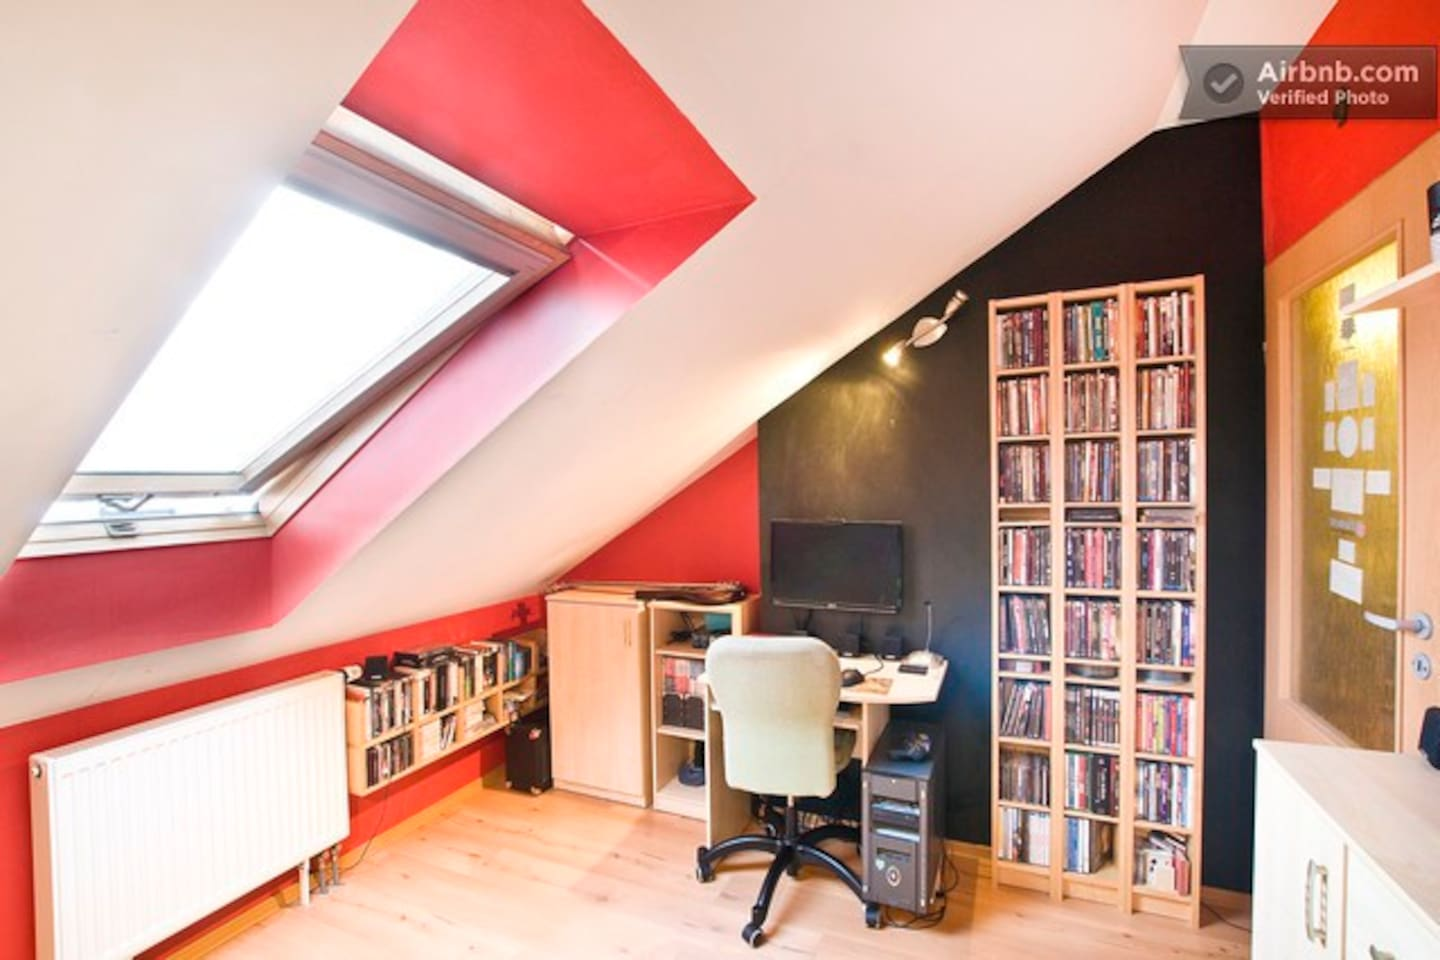 This is a room for rent - with computer and fast Wi-Fi internet